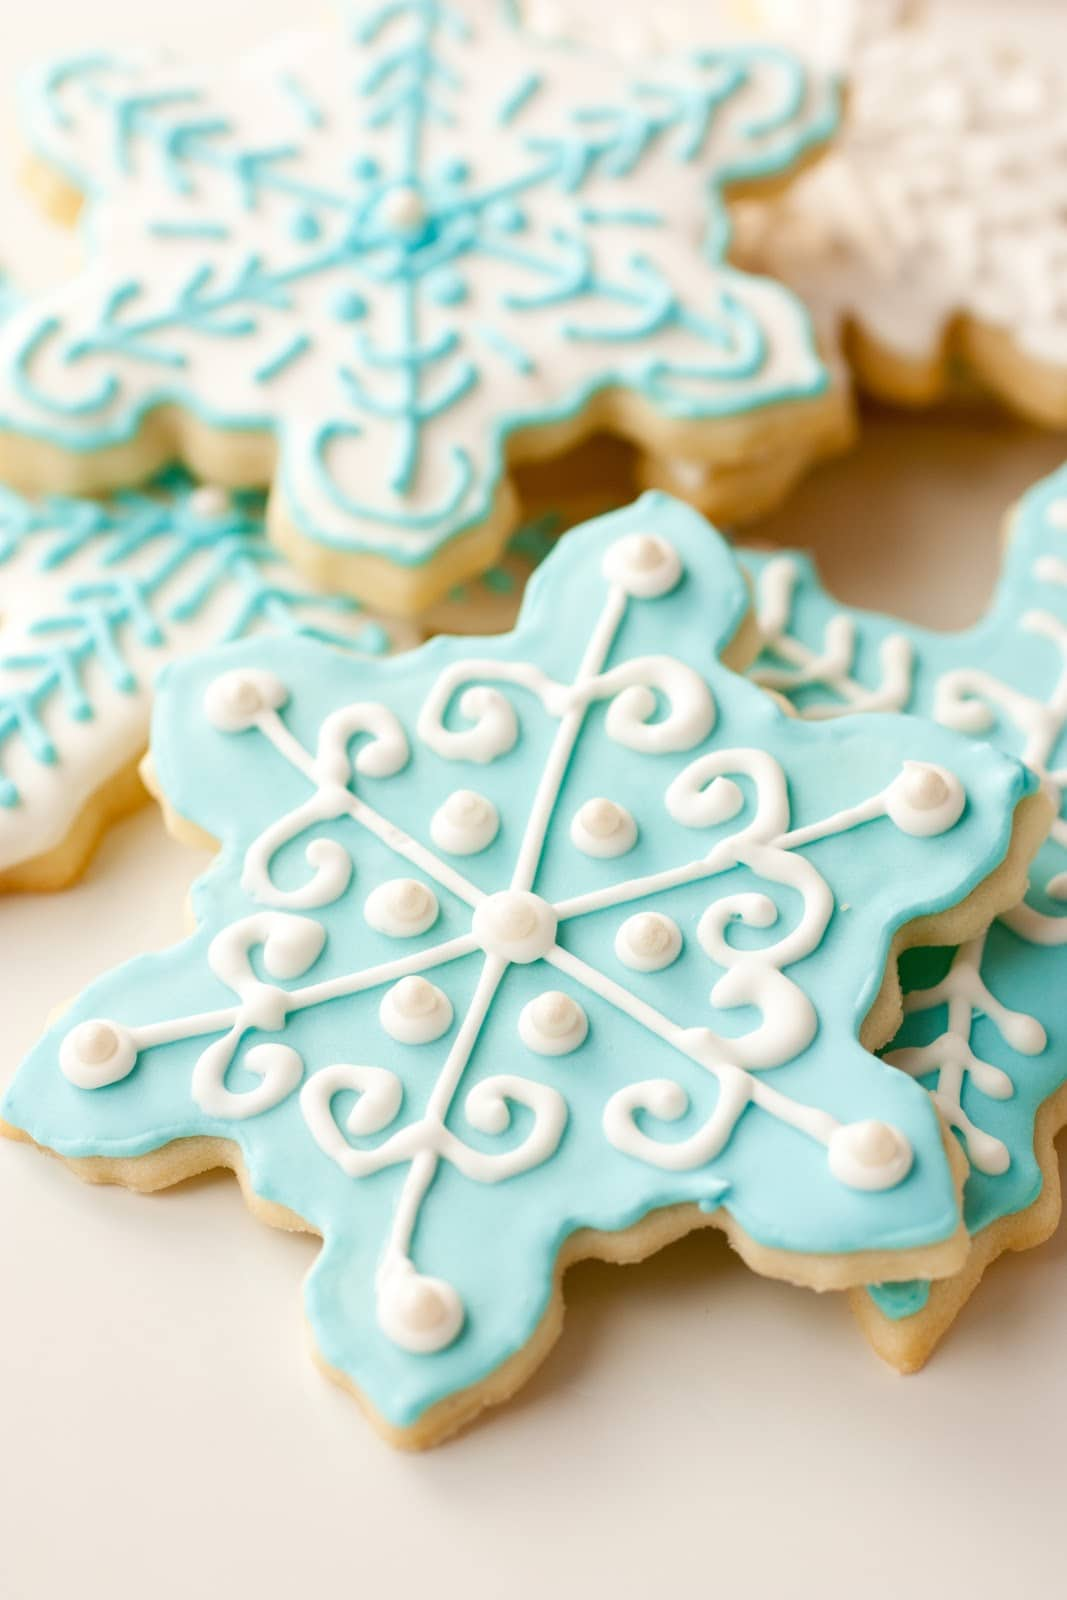 Sugar Cookie Recipe With Cake Flour